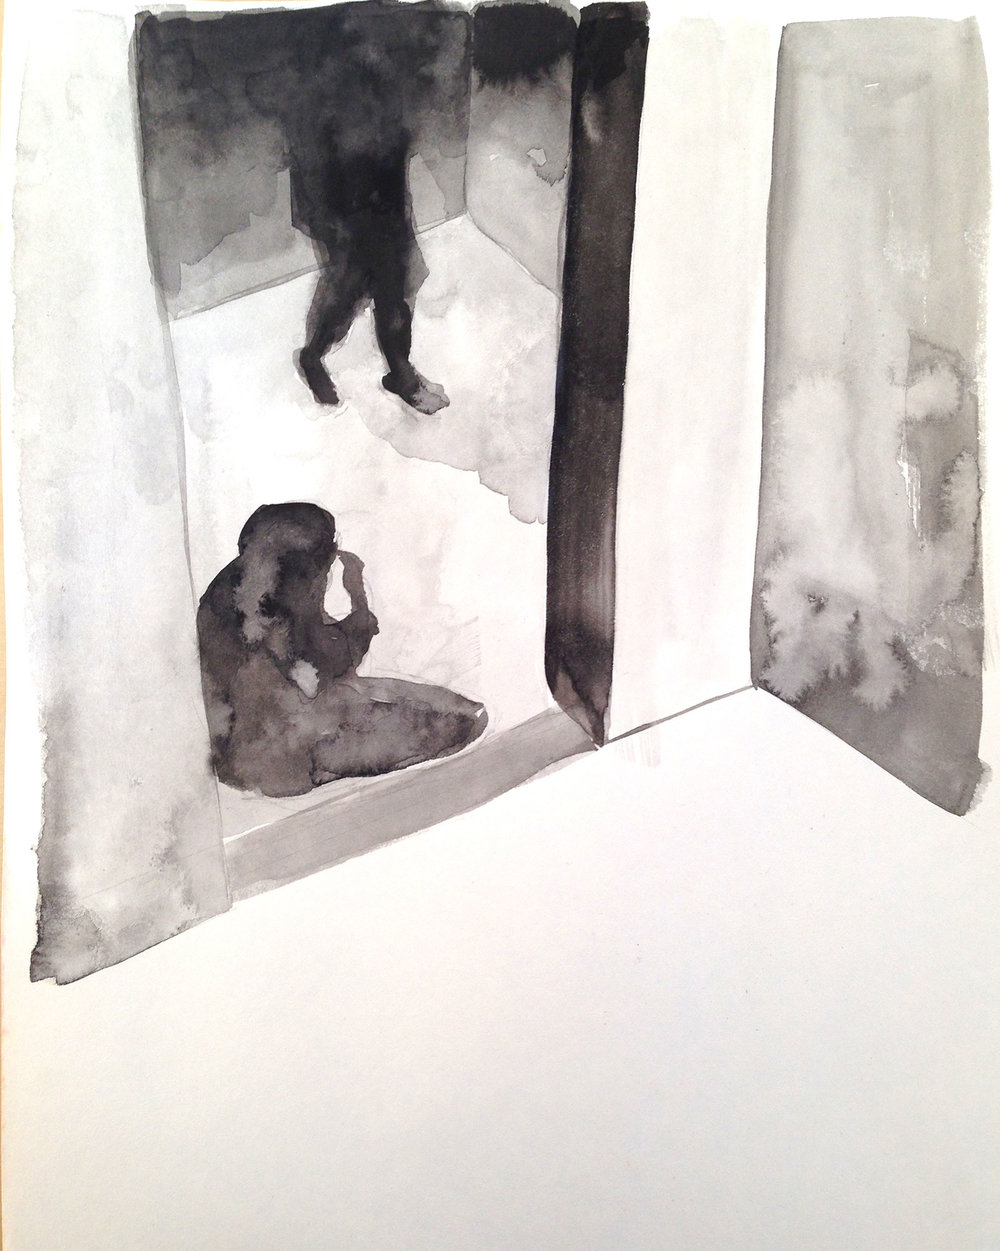 ELEVATOR 3, 2014, 9 X 12 INCHES, INK ON PAPER